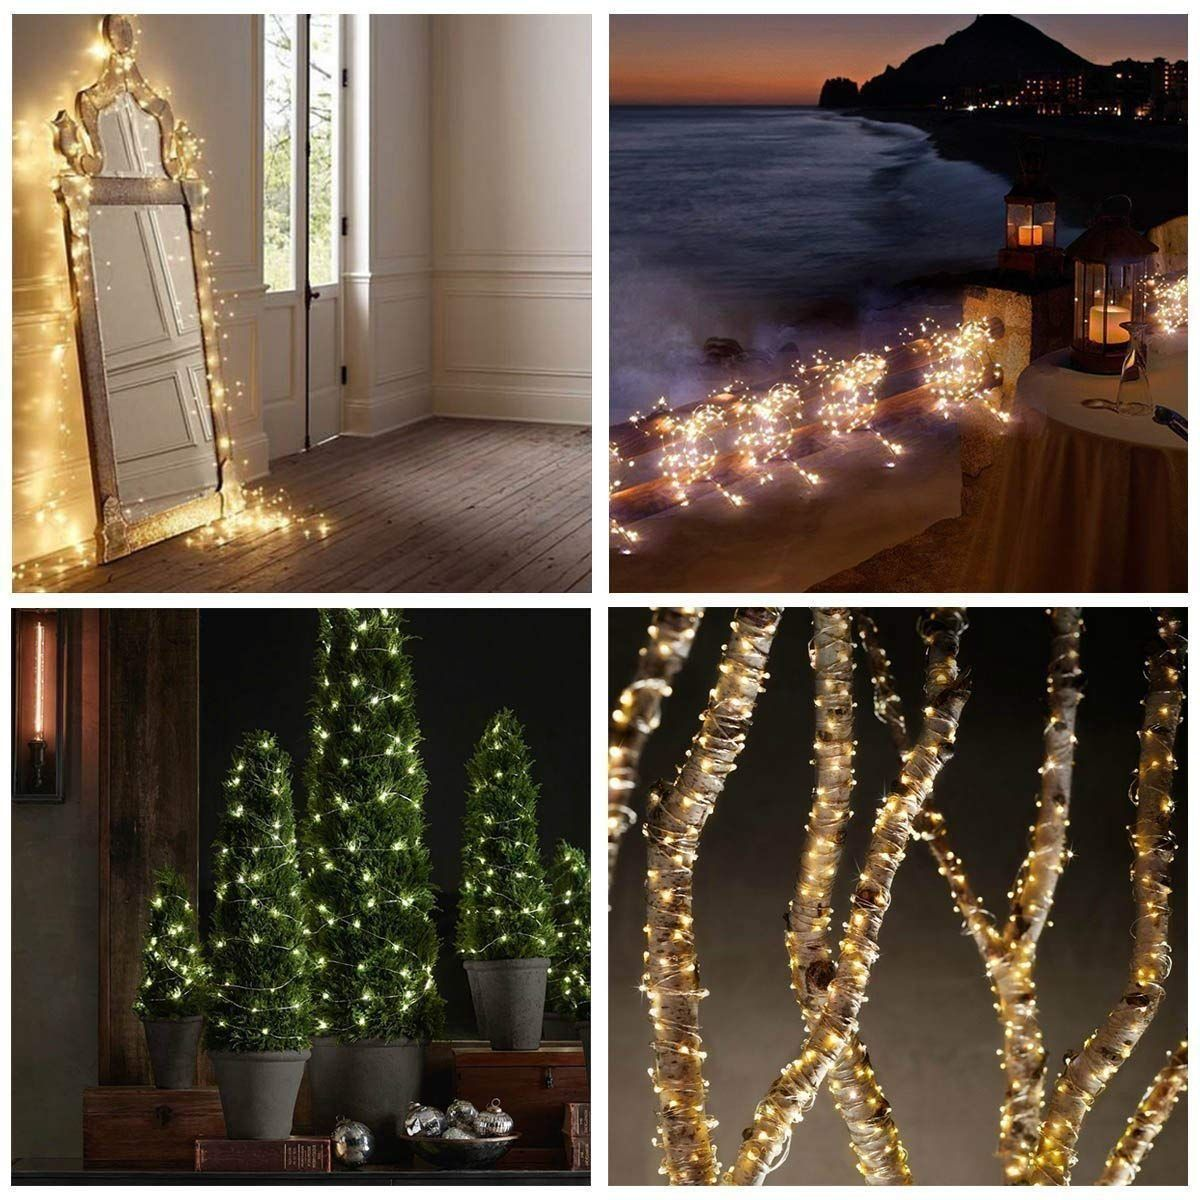 Micro Christmas Lights.33 Ft 100 Warm White Led Waterproof Micro Fairy String Lights With Power Adaptor